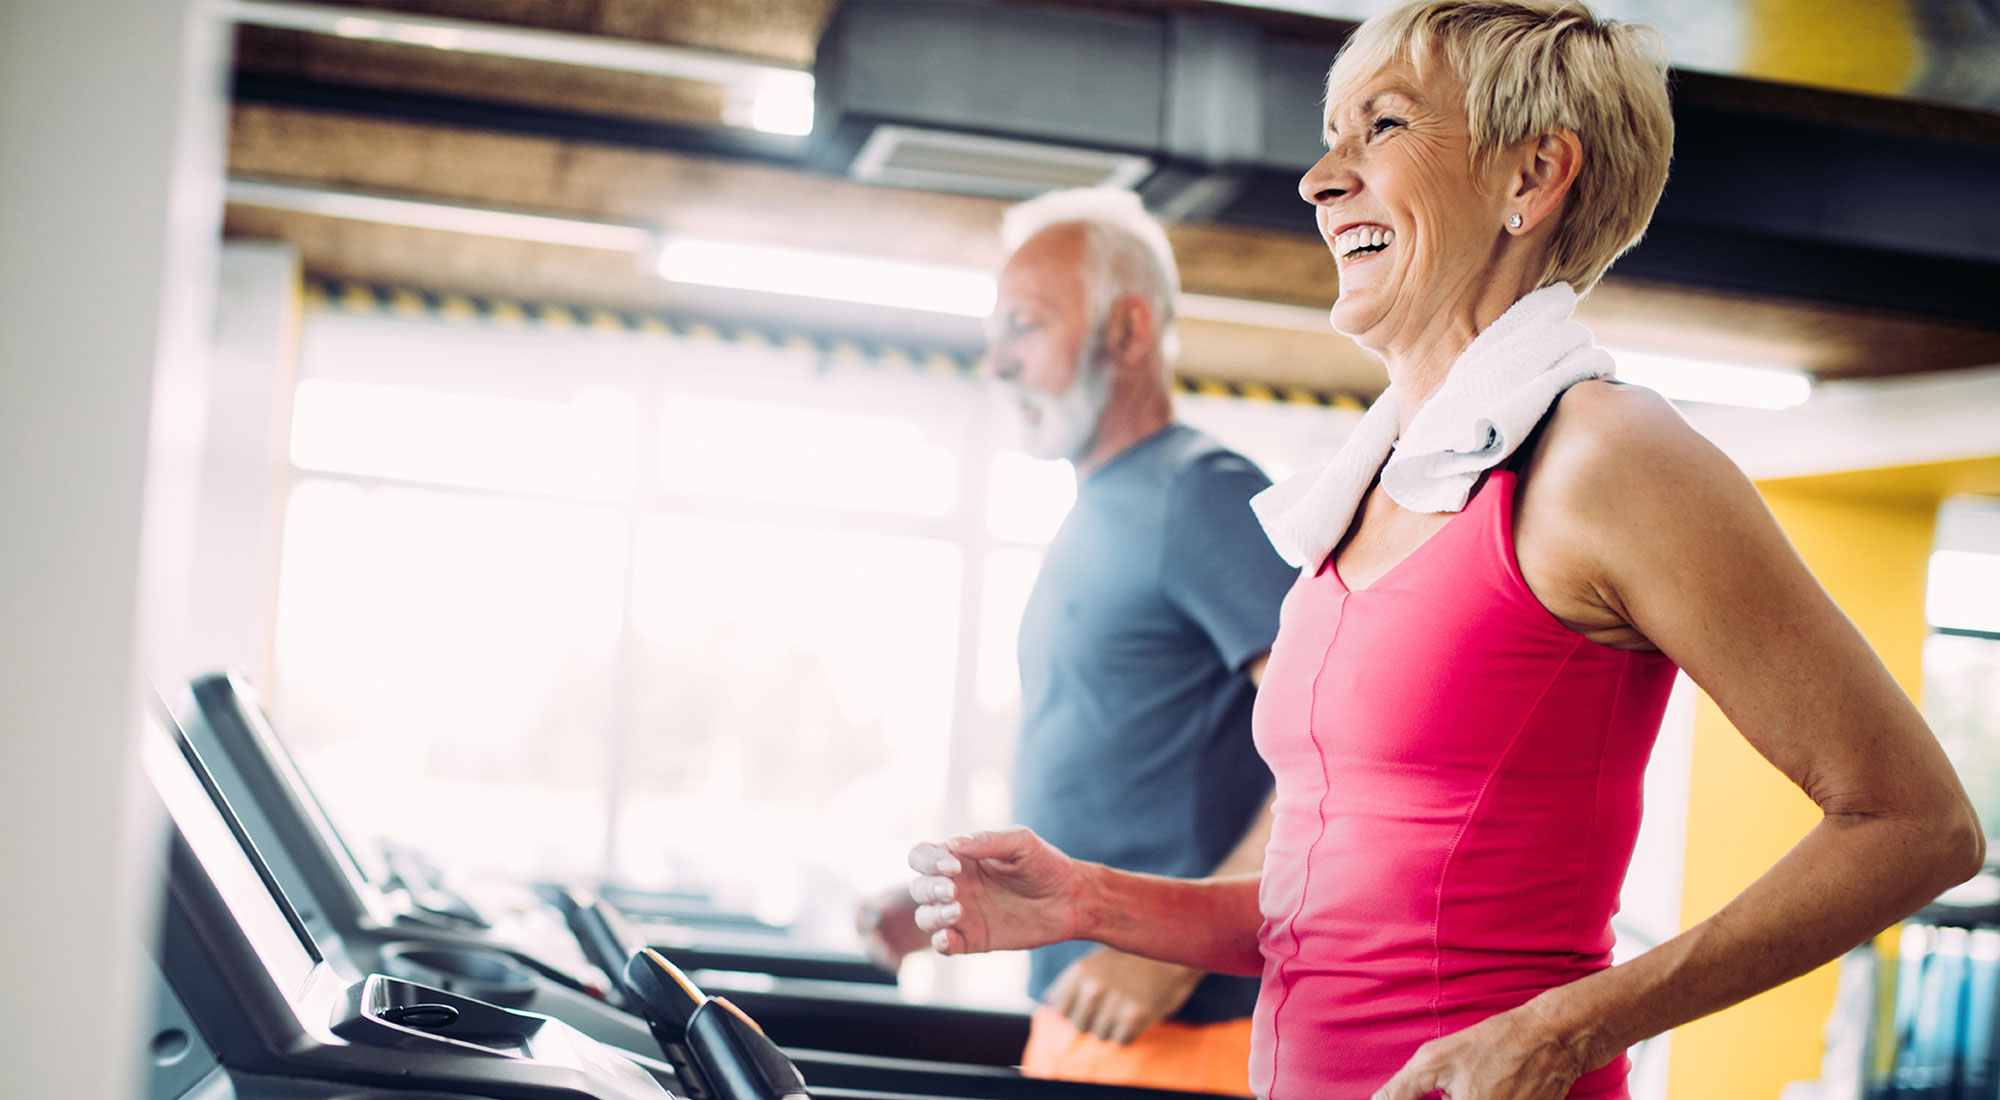 UK fitness and leisure sector continues to set benchmark for safety and COVID-19 reporting following reopening